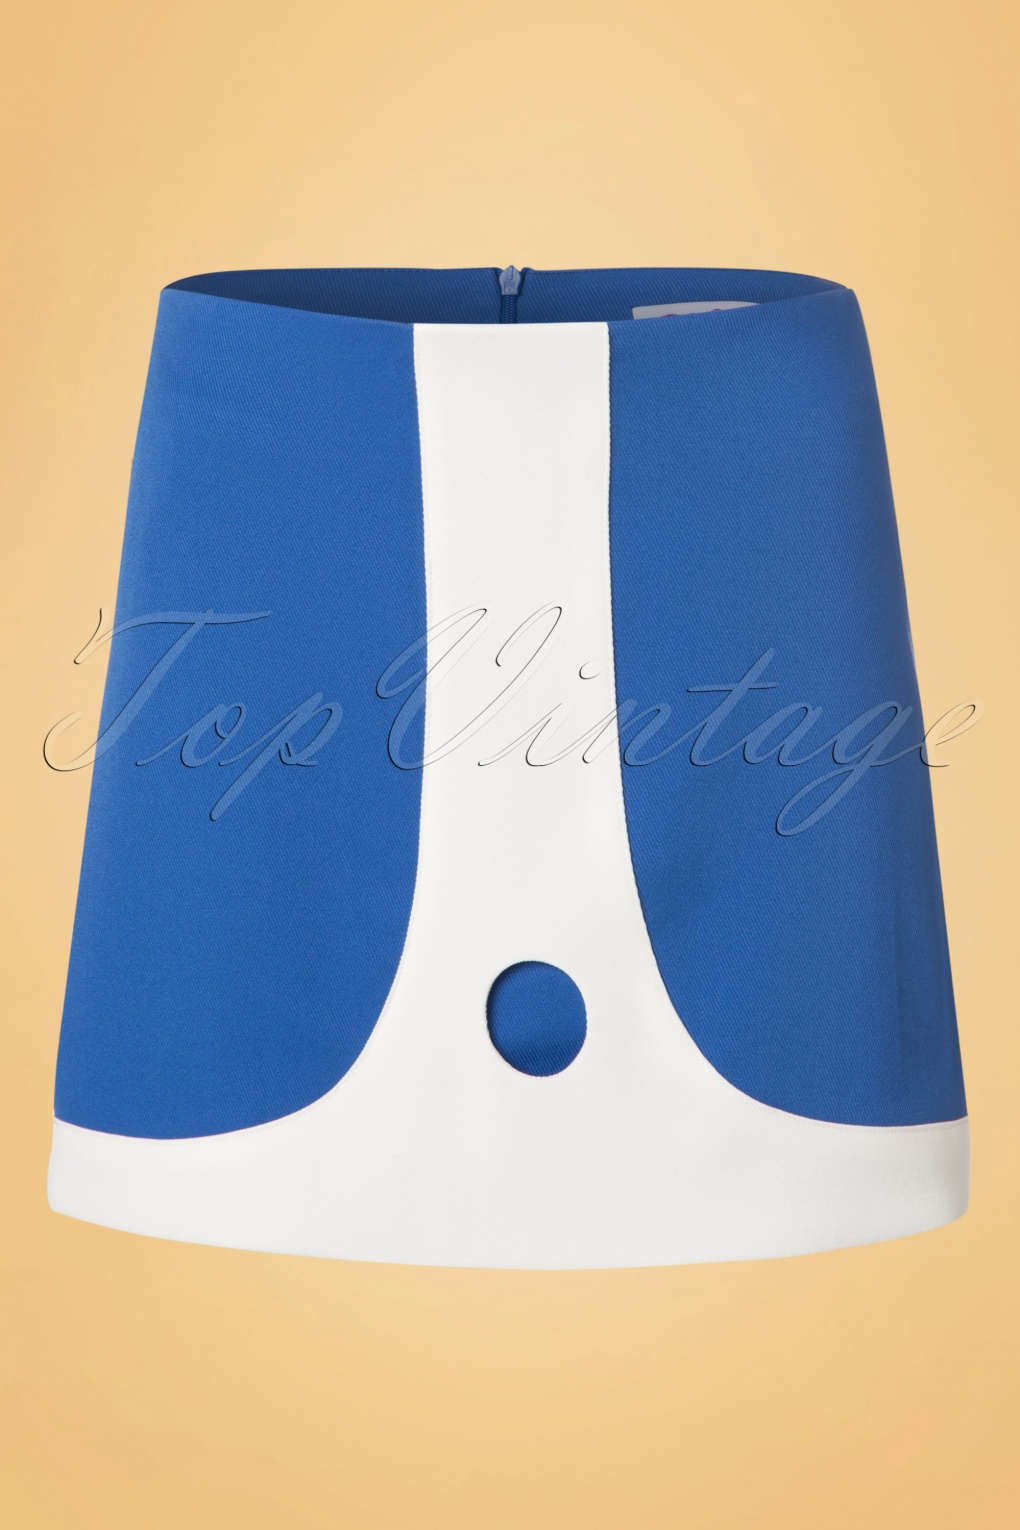 Retro Skirts: Vintage, Pencil, Circle, & Plus Sizes 60s Lori Mini Skirt in Blue and Ivory £12.71 AT vintagedancer.com